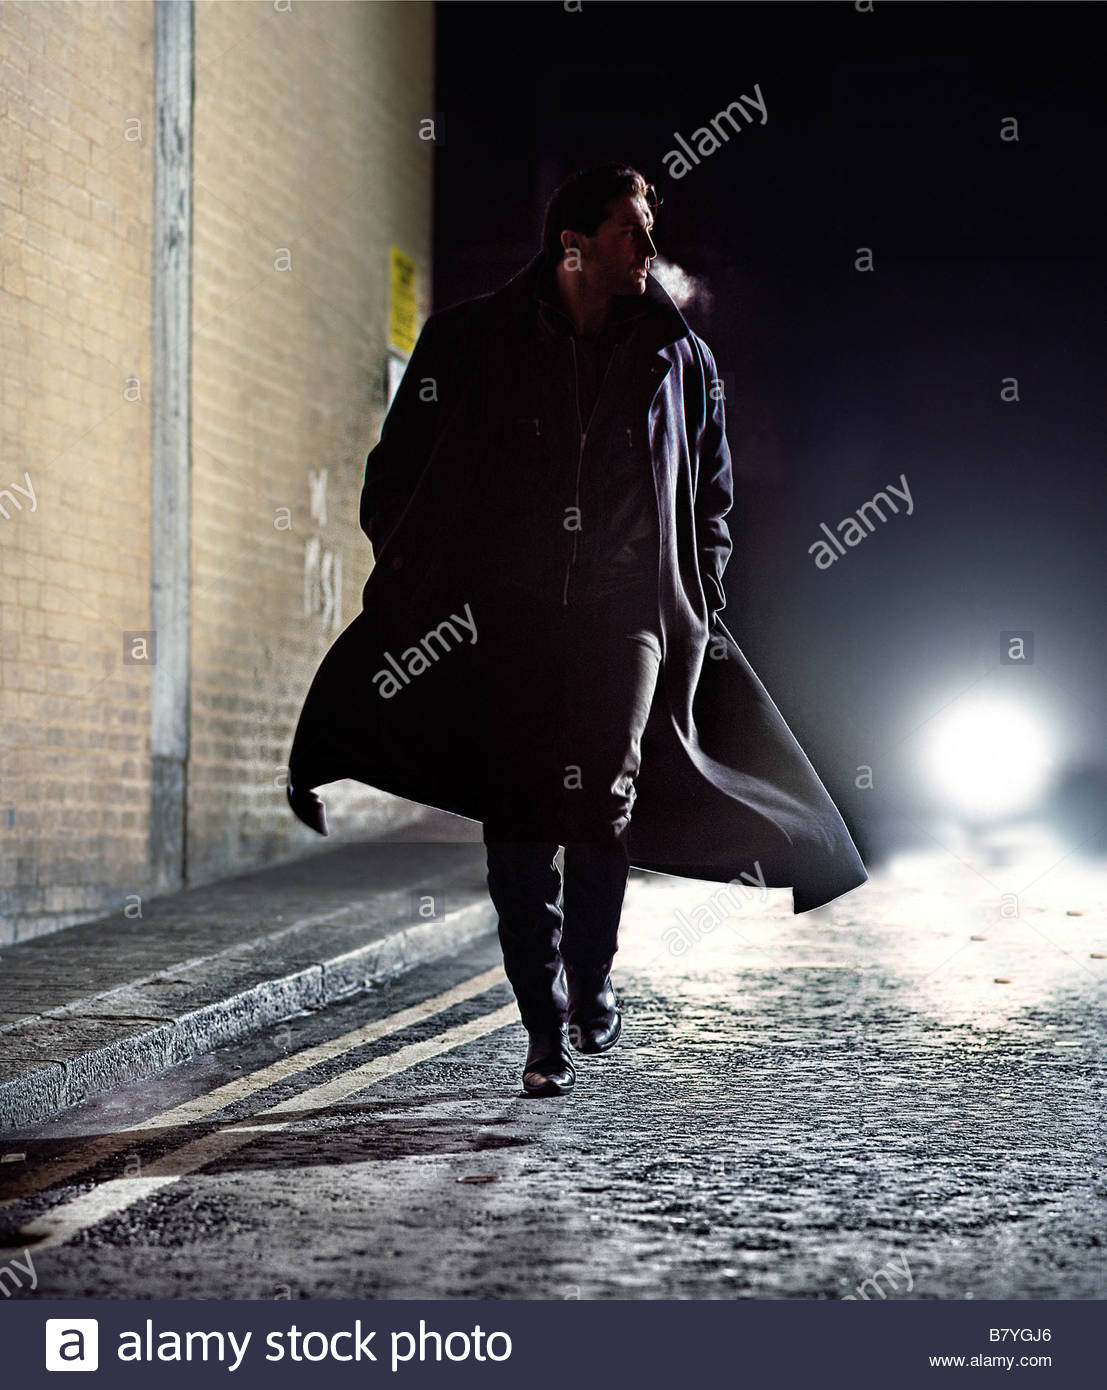 man in overcoat running down street at night - car lights behind Stock Foto